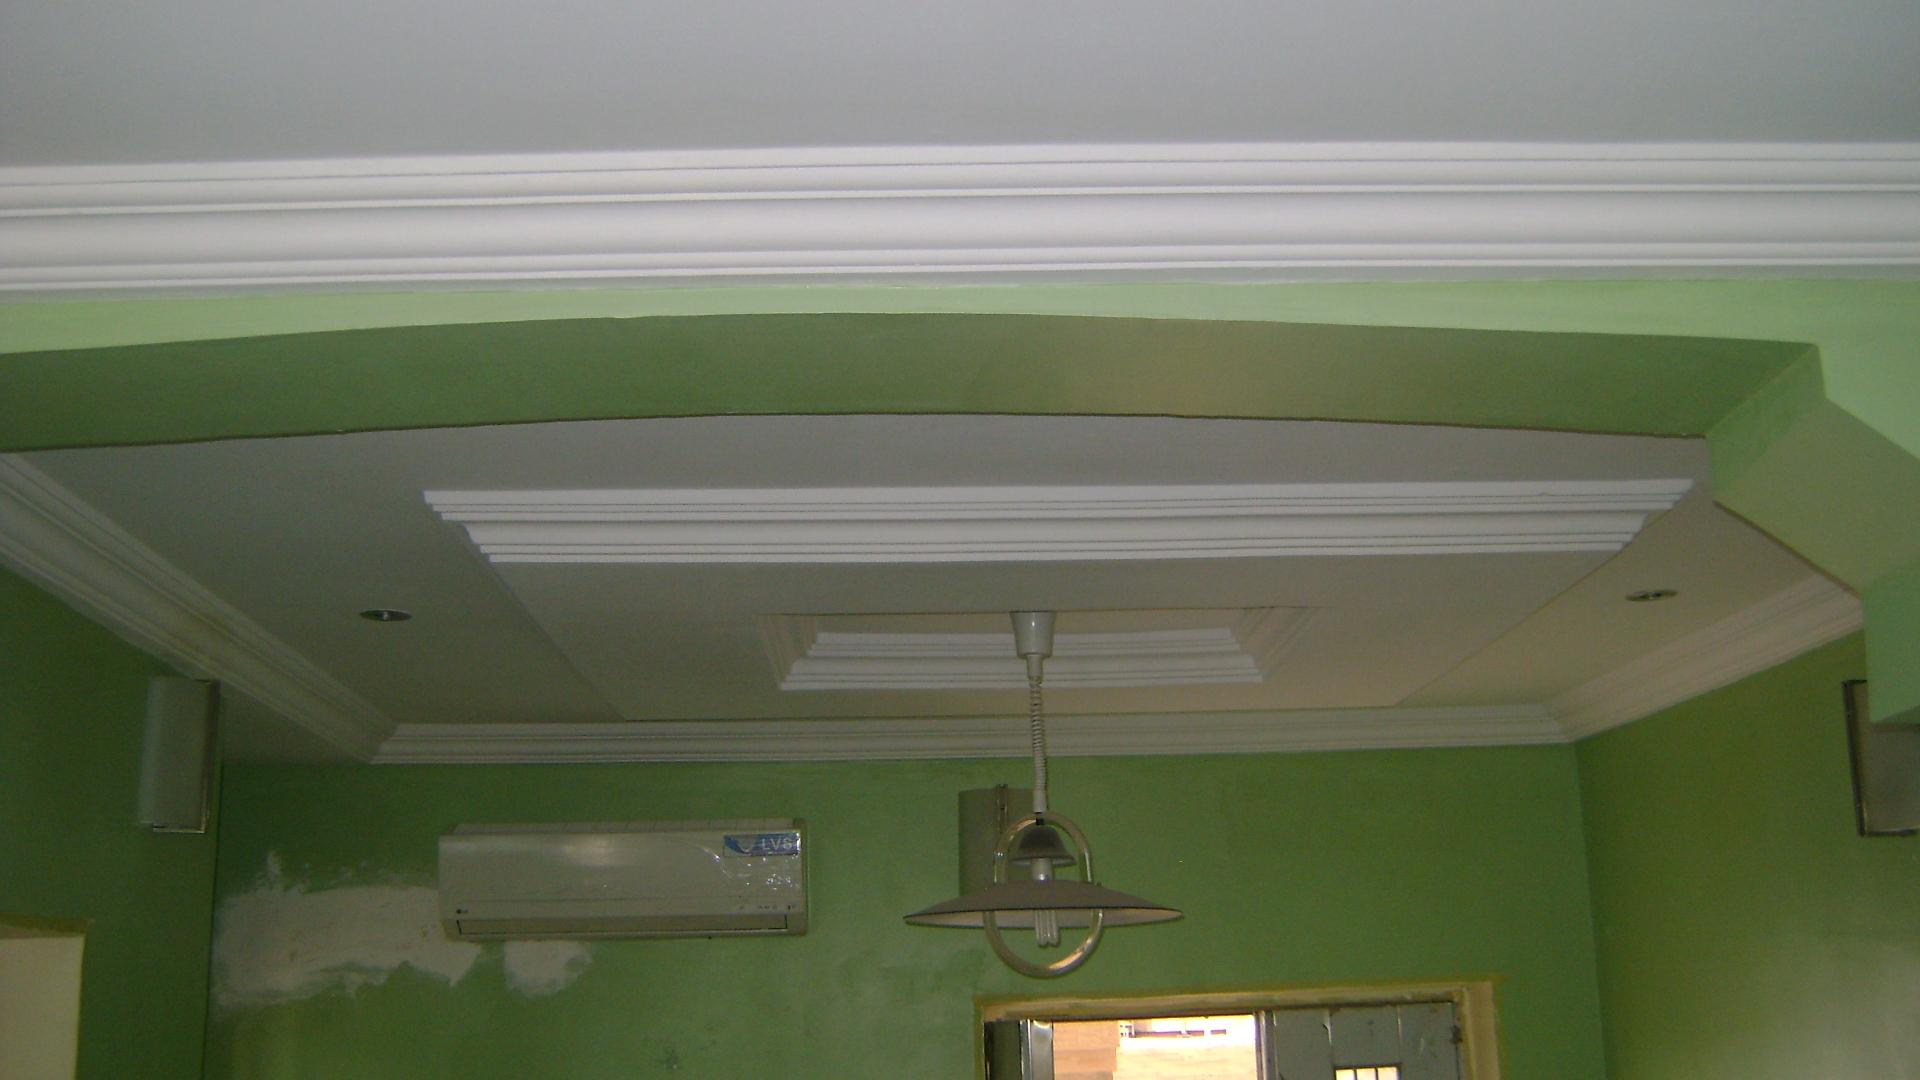 full pop ceiling with split Air conditioner AC on the wall - GharExpert